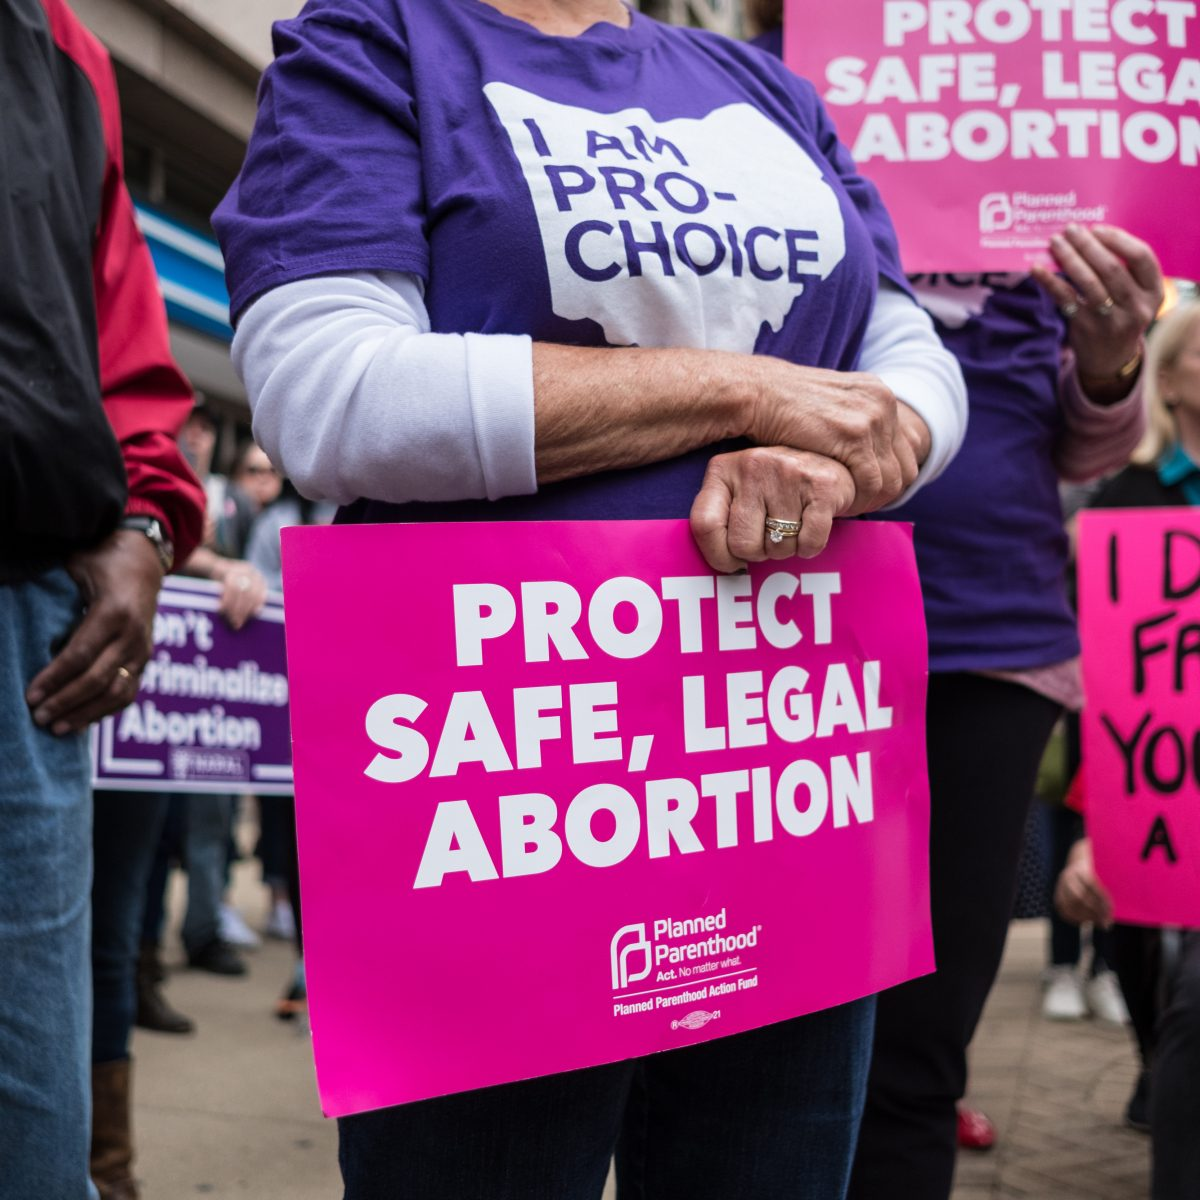 Texas, Ohio Label Abortions As Nonessential Medical Procedures